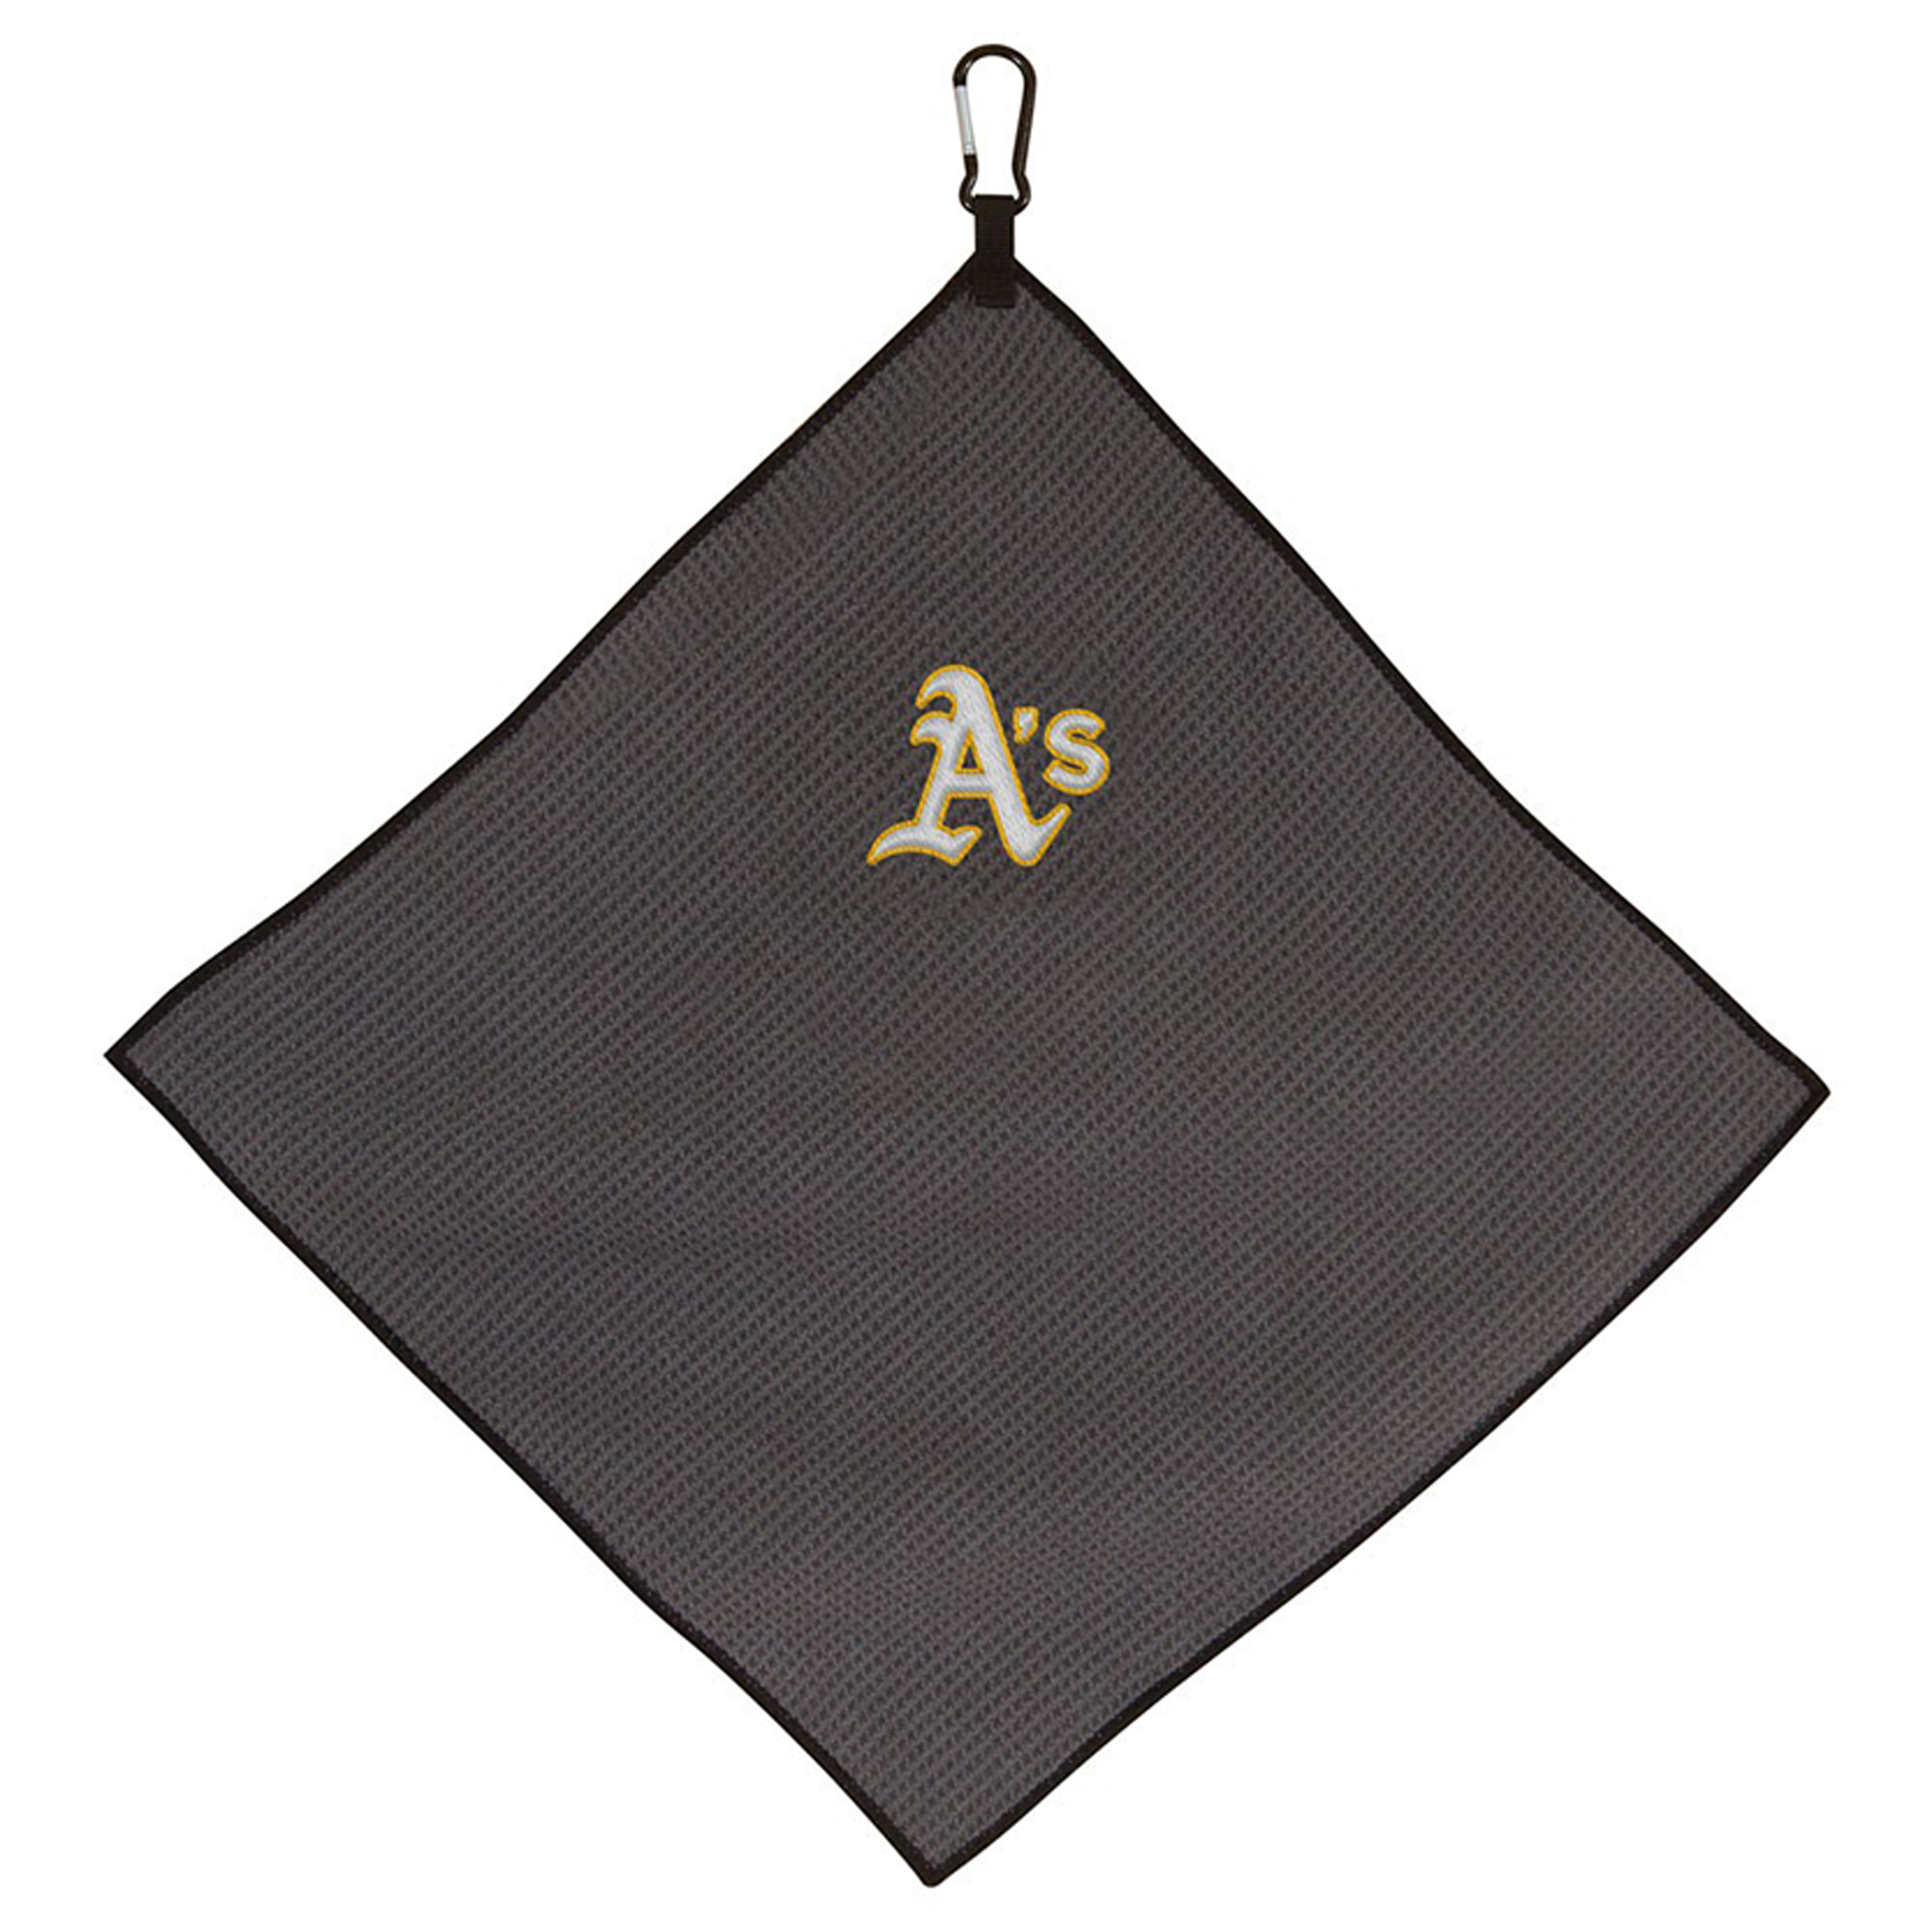 "Oakland Athletics 15"" x 15"" Microfiber Golf Towel - No Size"